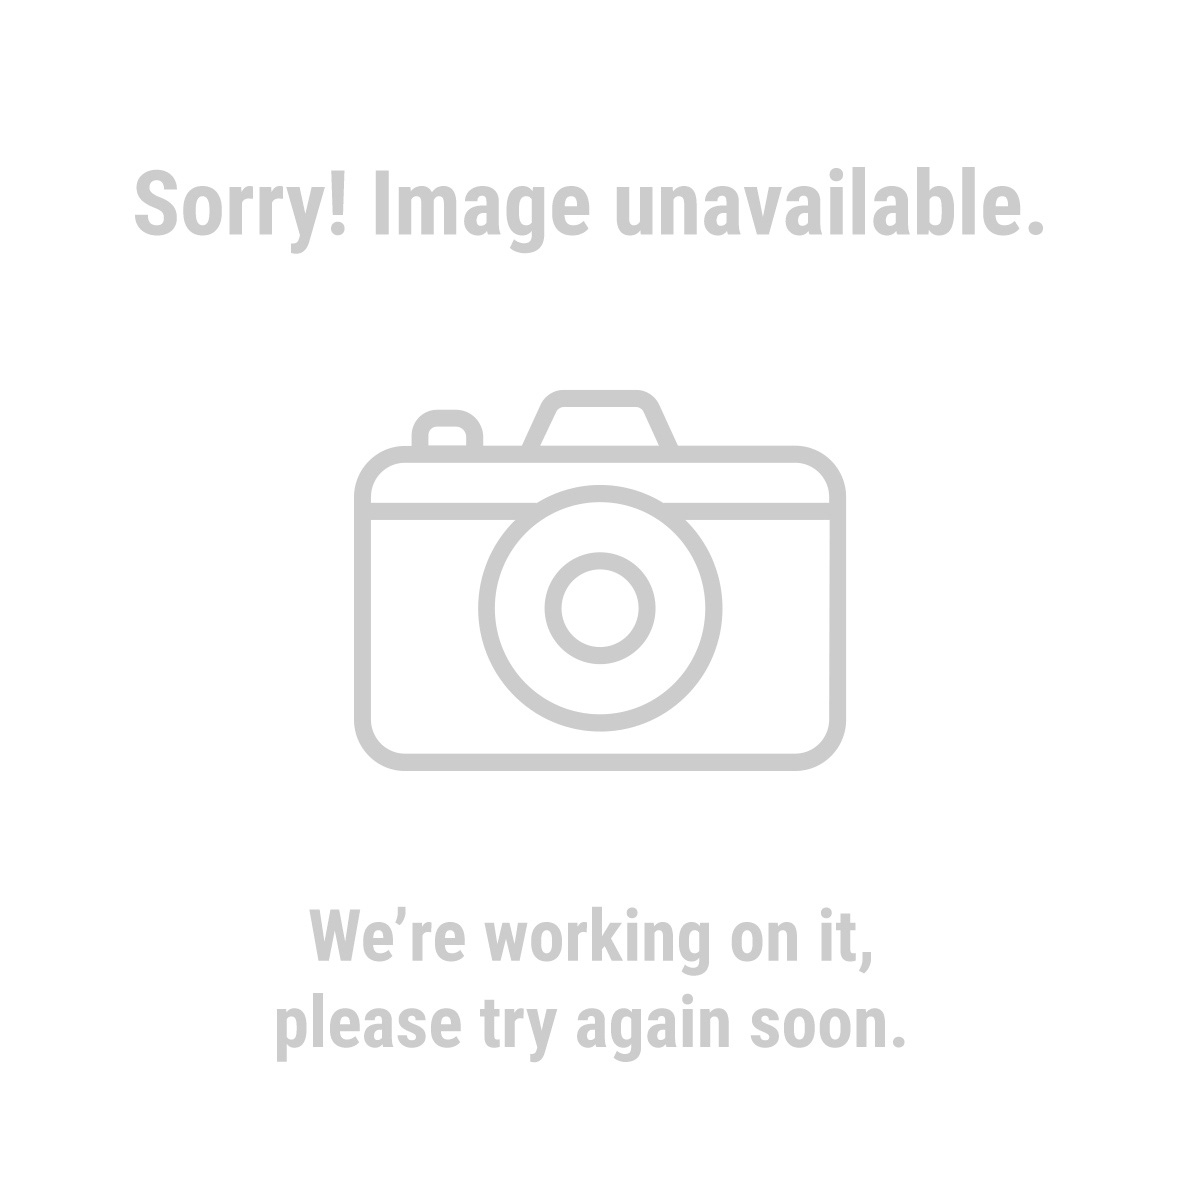 StikTek 63243 60 yds. x 1.88 in. Painter's Tape